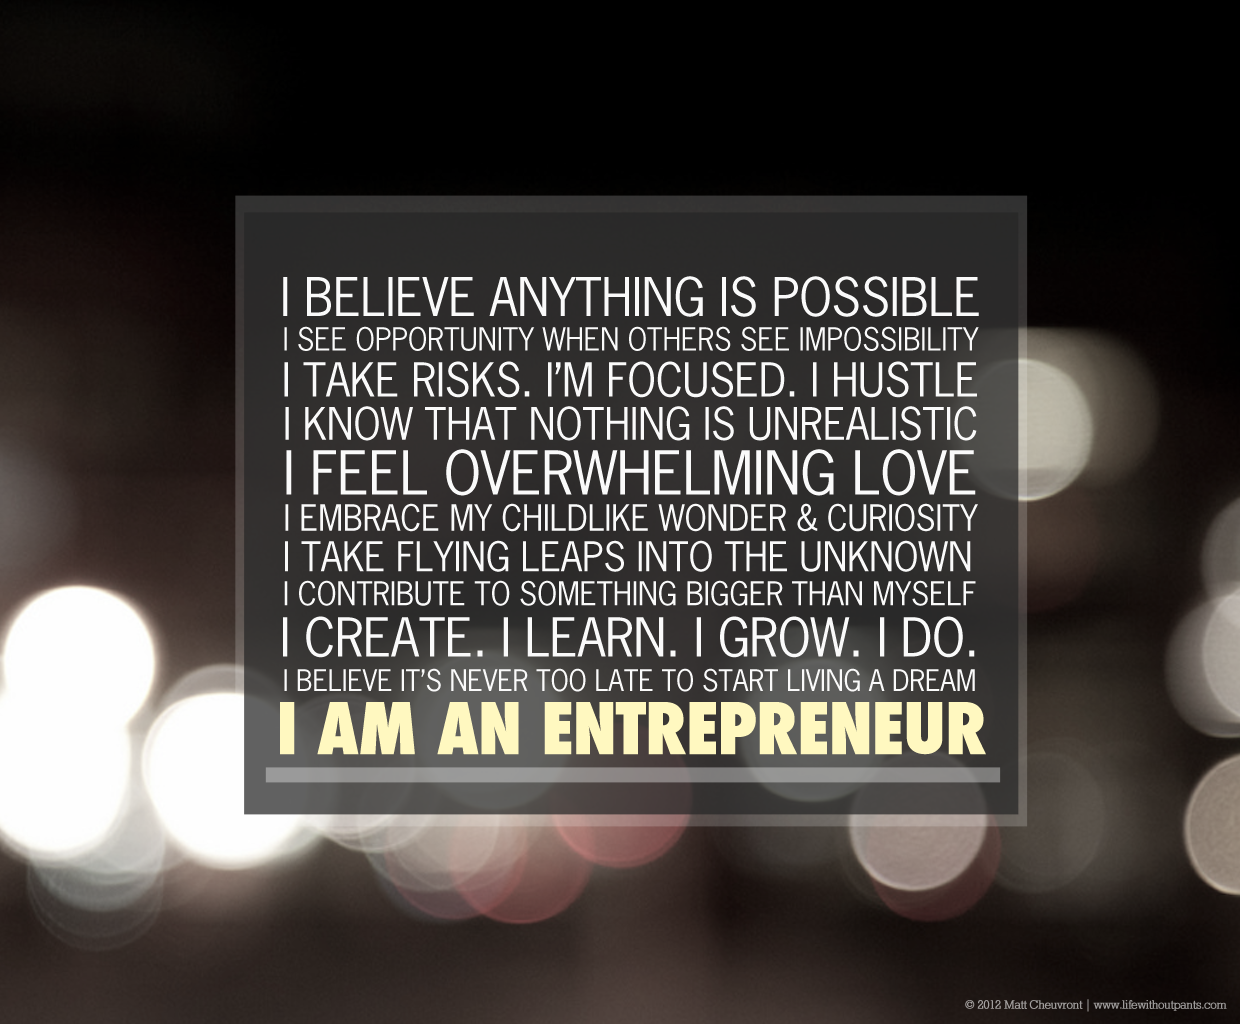 I Am An Entrepreneur, c 2012 by Matt Cheuvront, www.lifewithoutpants.com